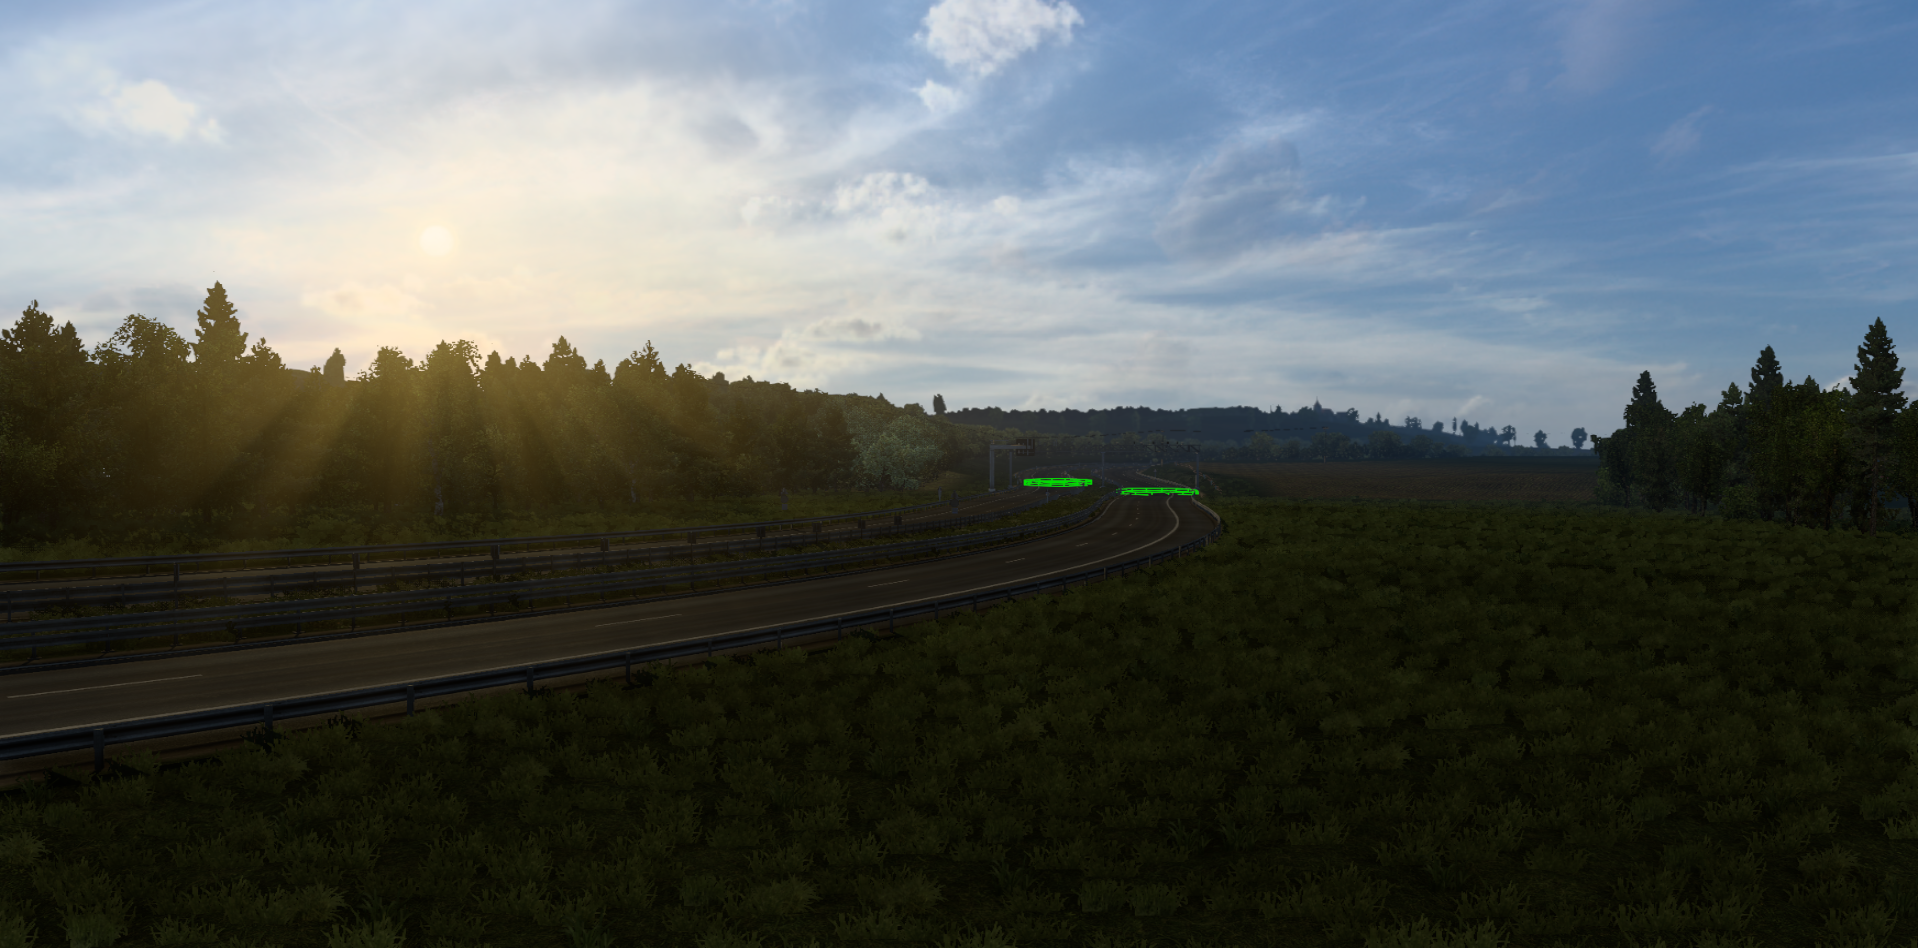 ets2_20210326_204106_00.png